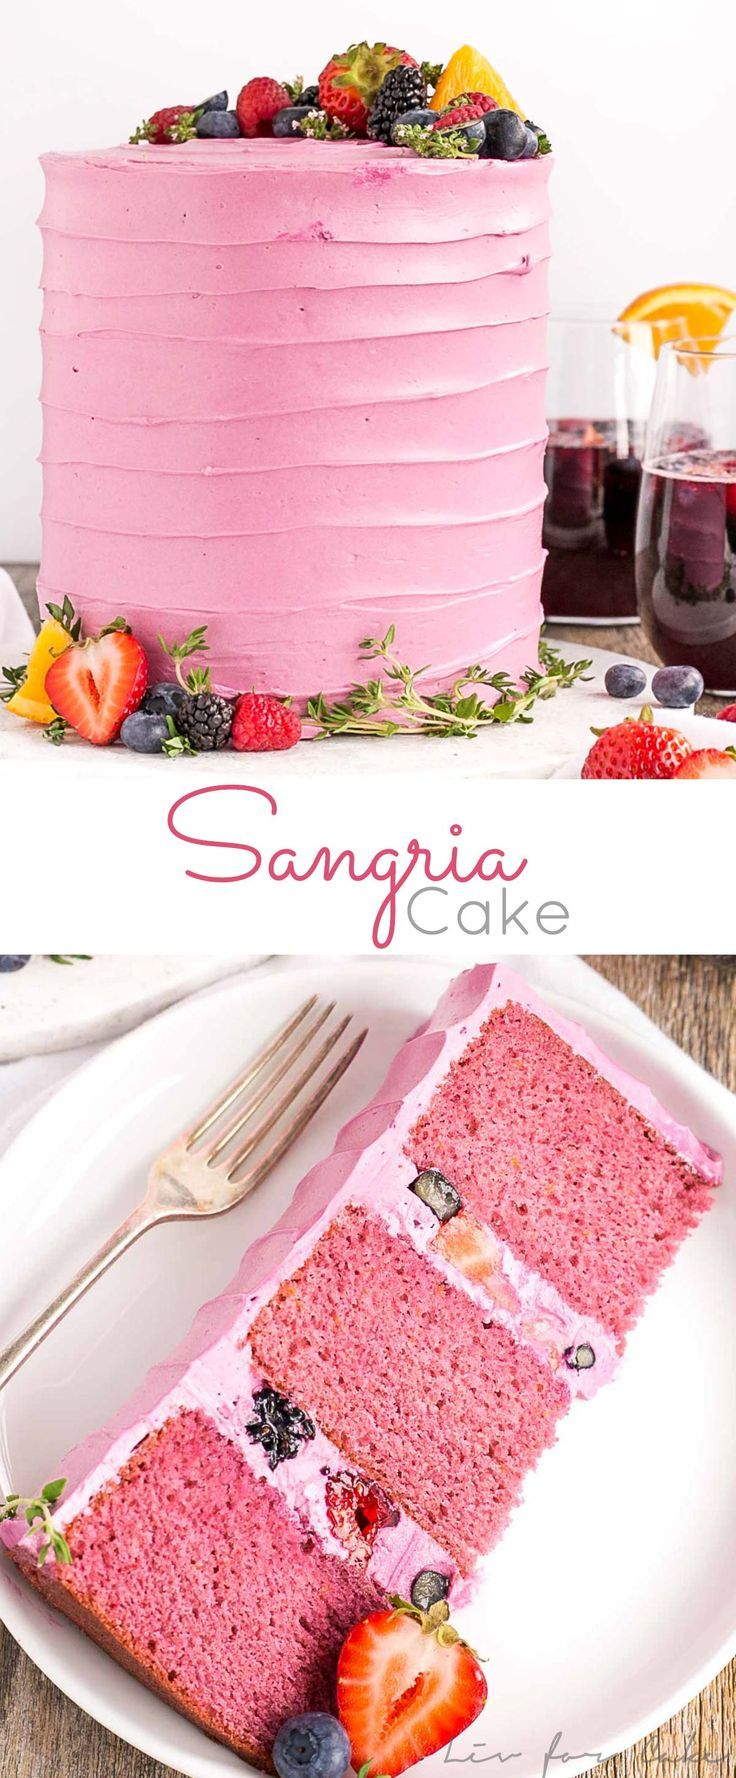 Celebrate summer with this Sangria Cake!Cake layers infused with sangria and orange zest, topped with vanilla buttercream and fresh berries. | livforcake.com